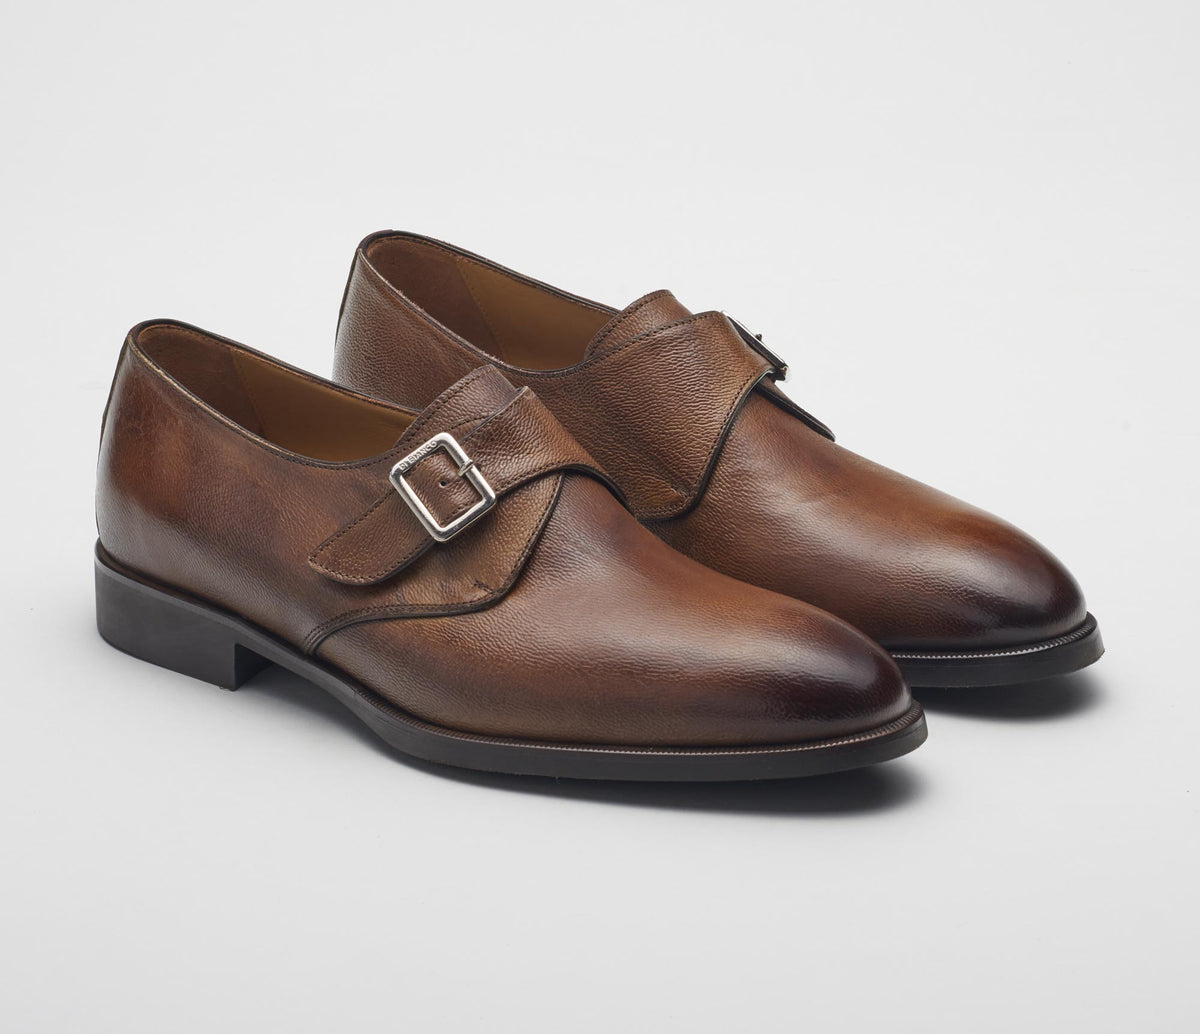 The Modica Reverse Sombrero Monk Strap Shoes